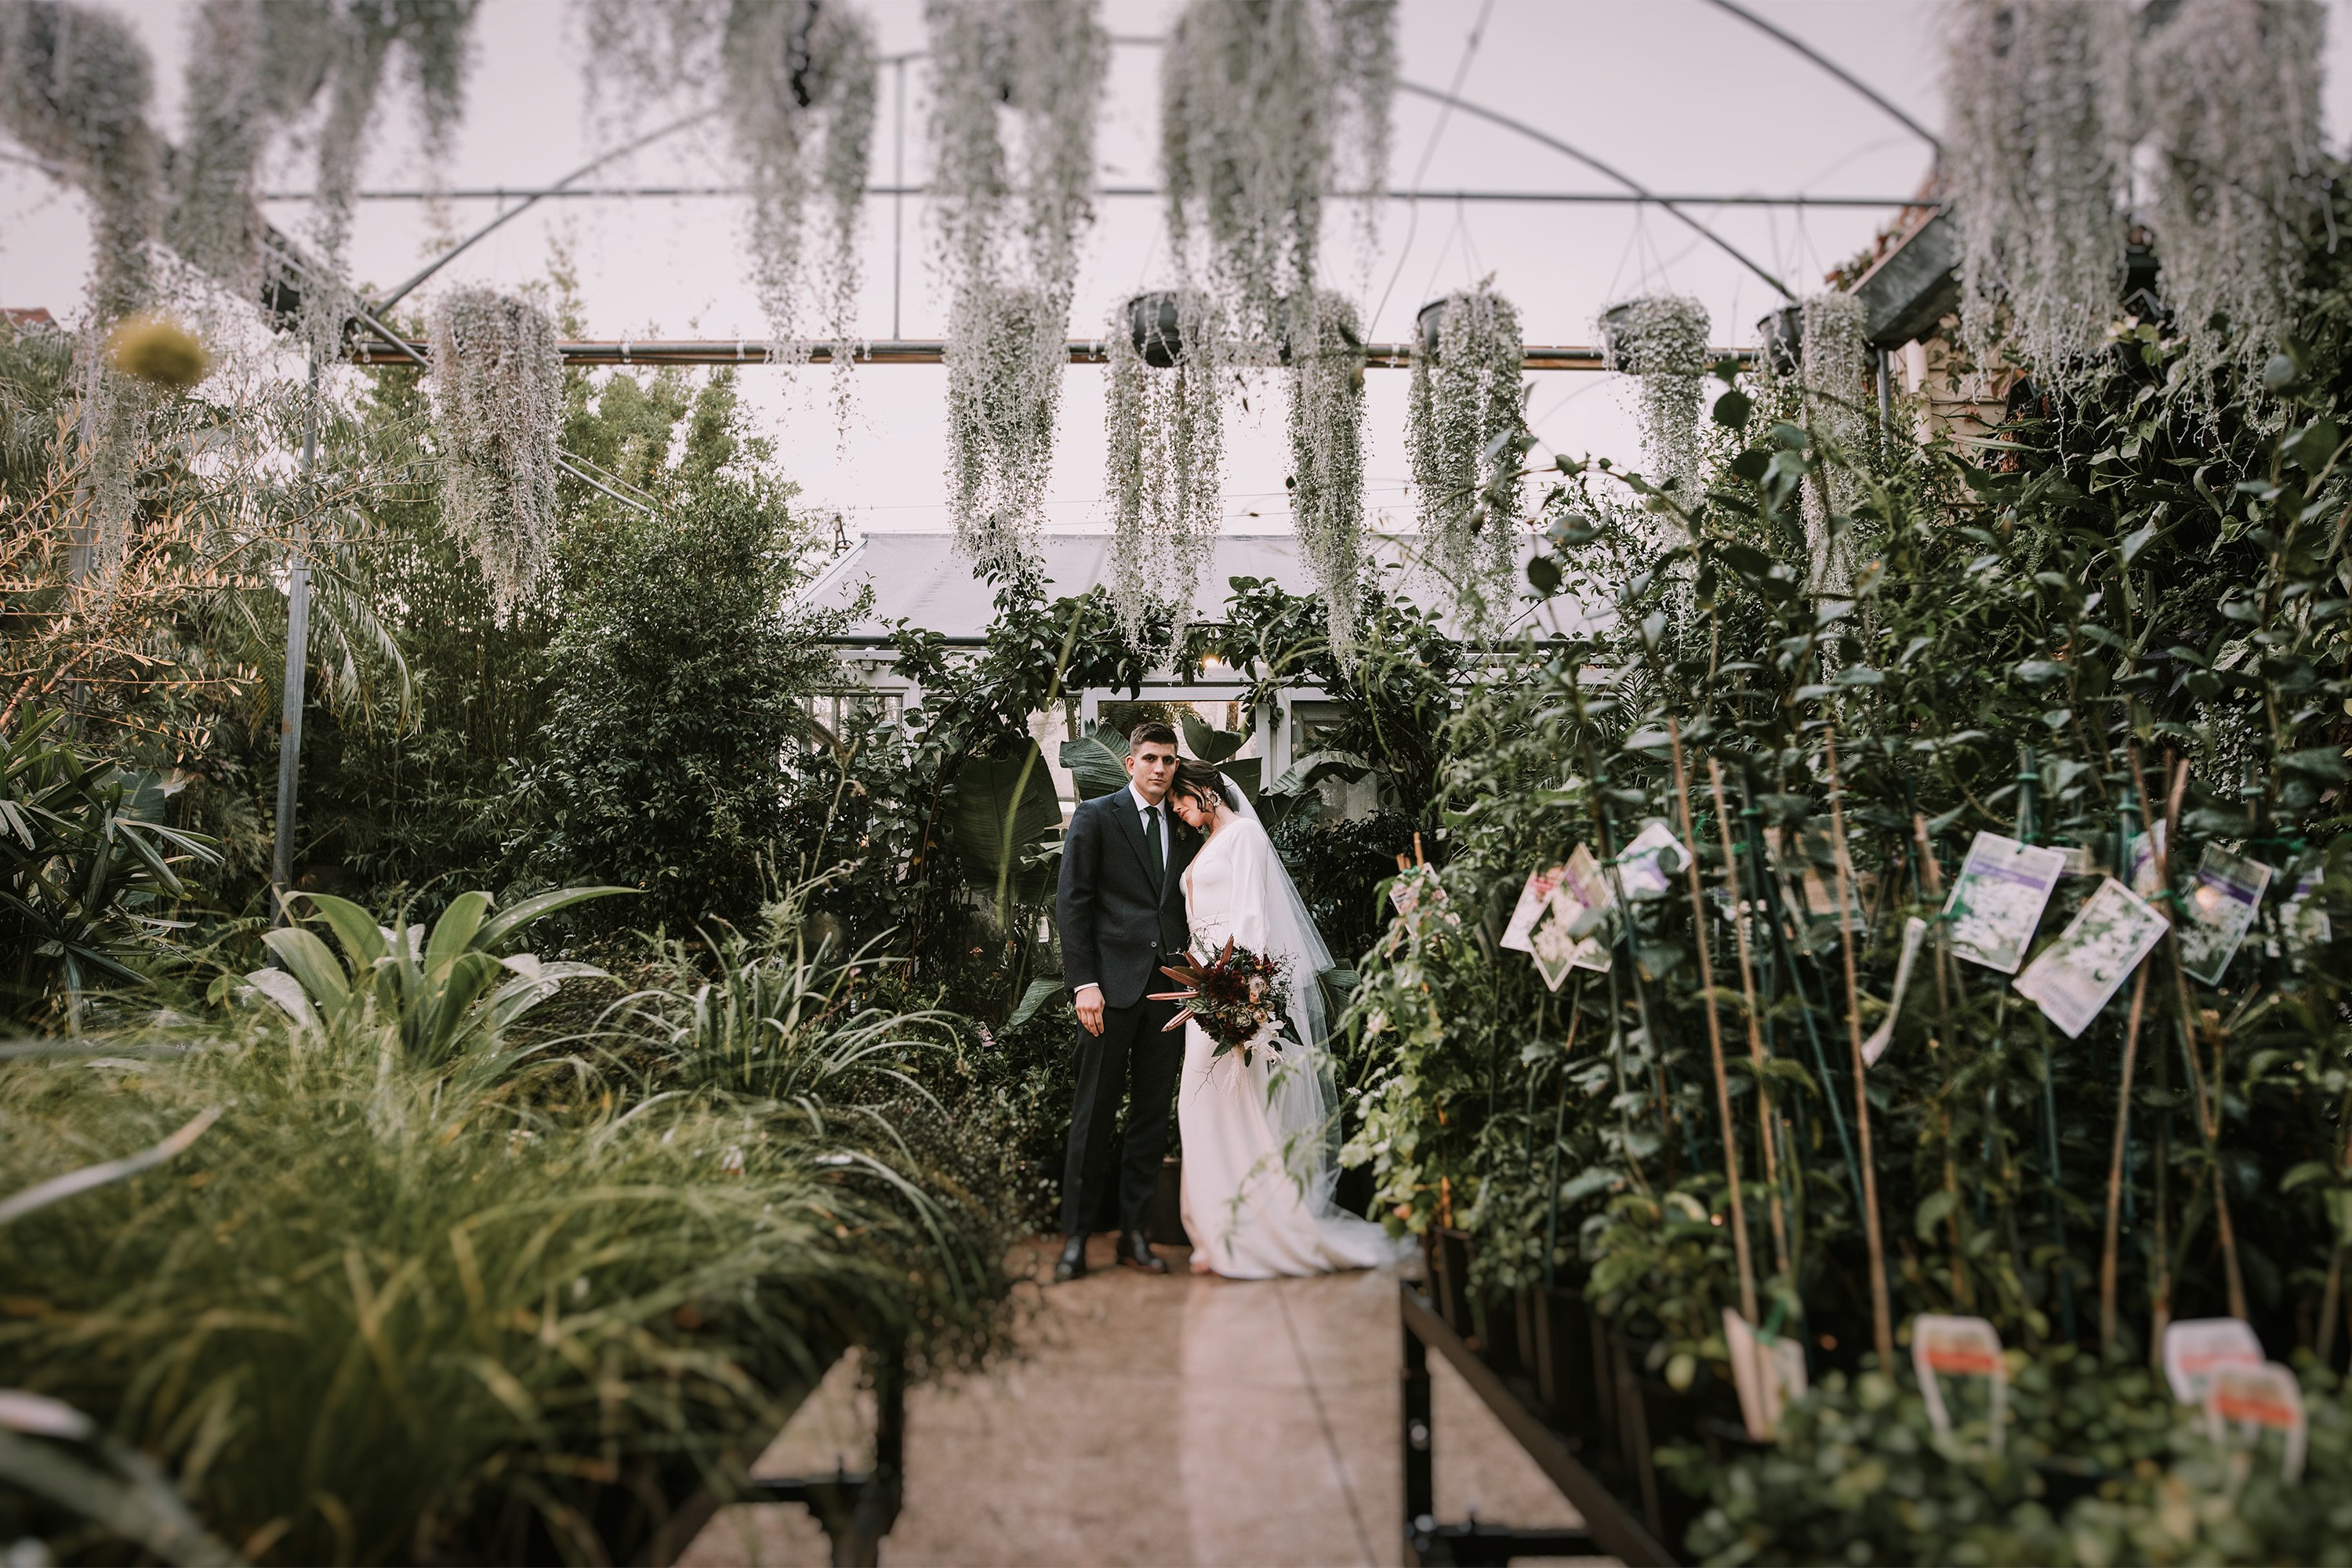 Bride and groom at Glasshaus Nursery, Richmond, Victoria